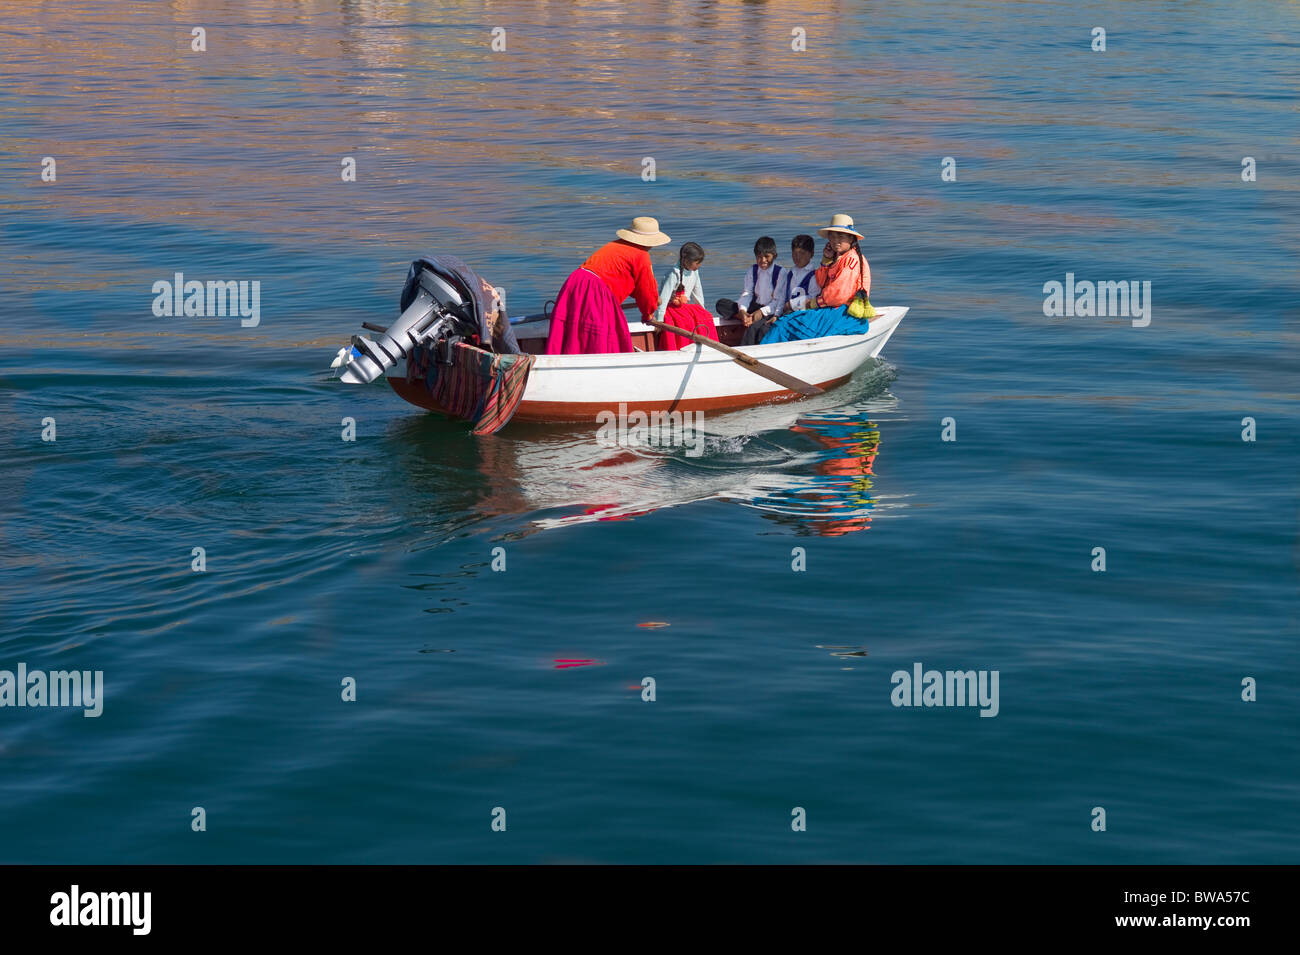 Skiff filled with indigenous people in costume being rowed by a woman, Uros Islands, Lake Titicaca, Puno, Peru - Stock Image